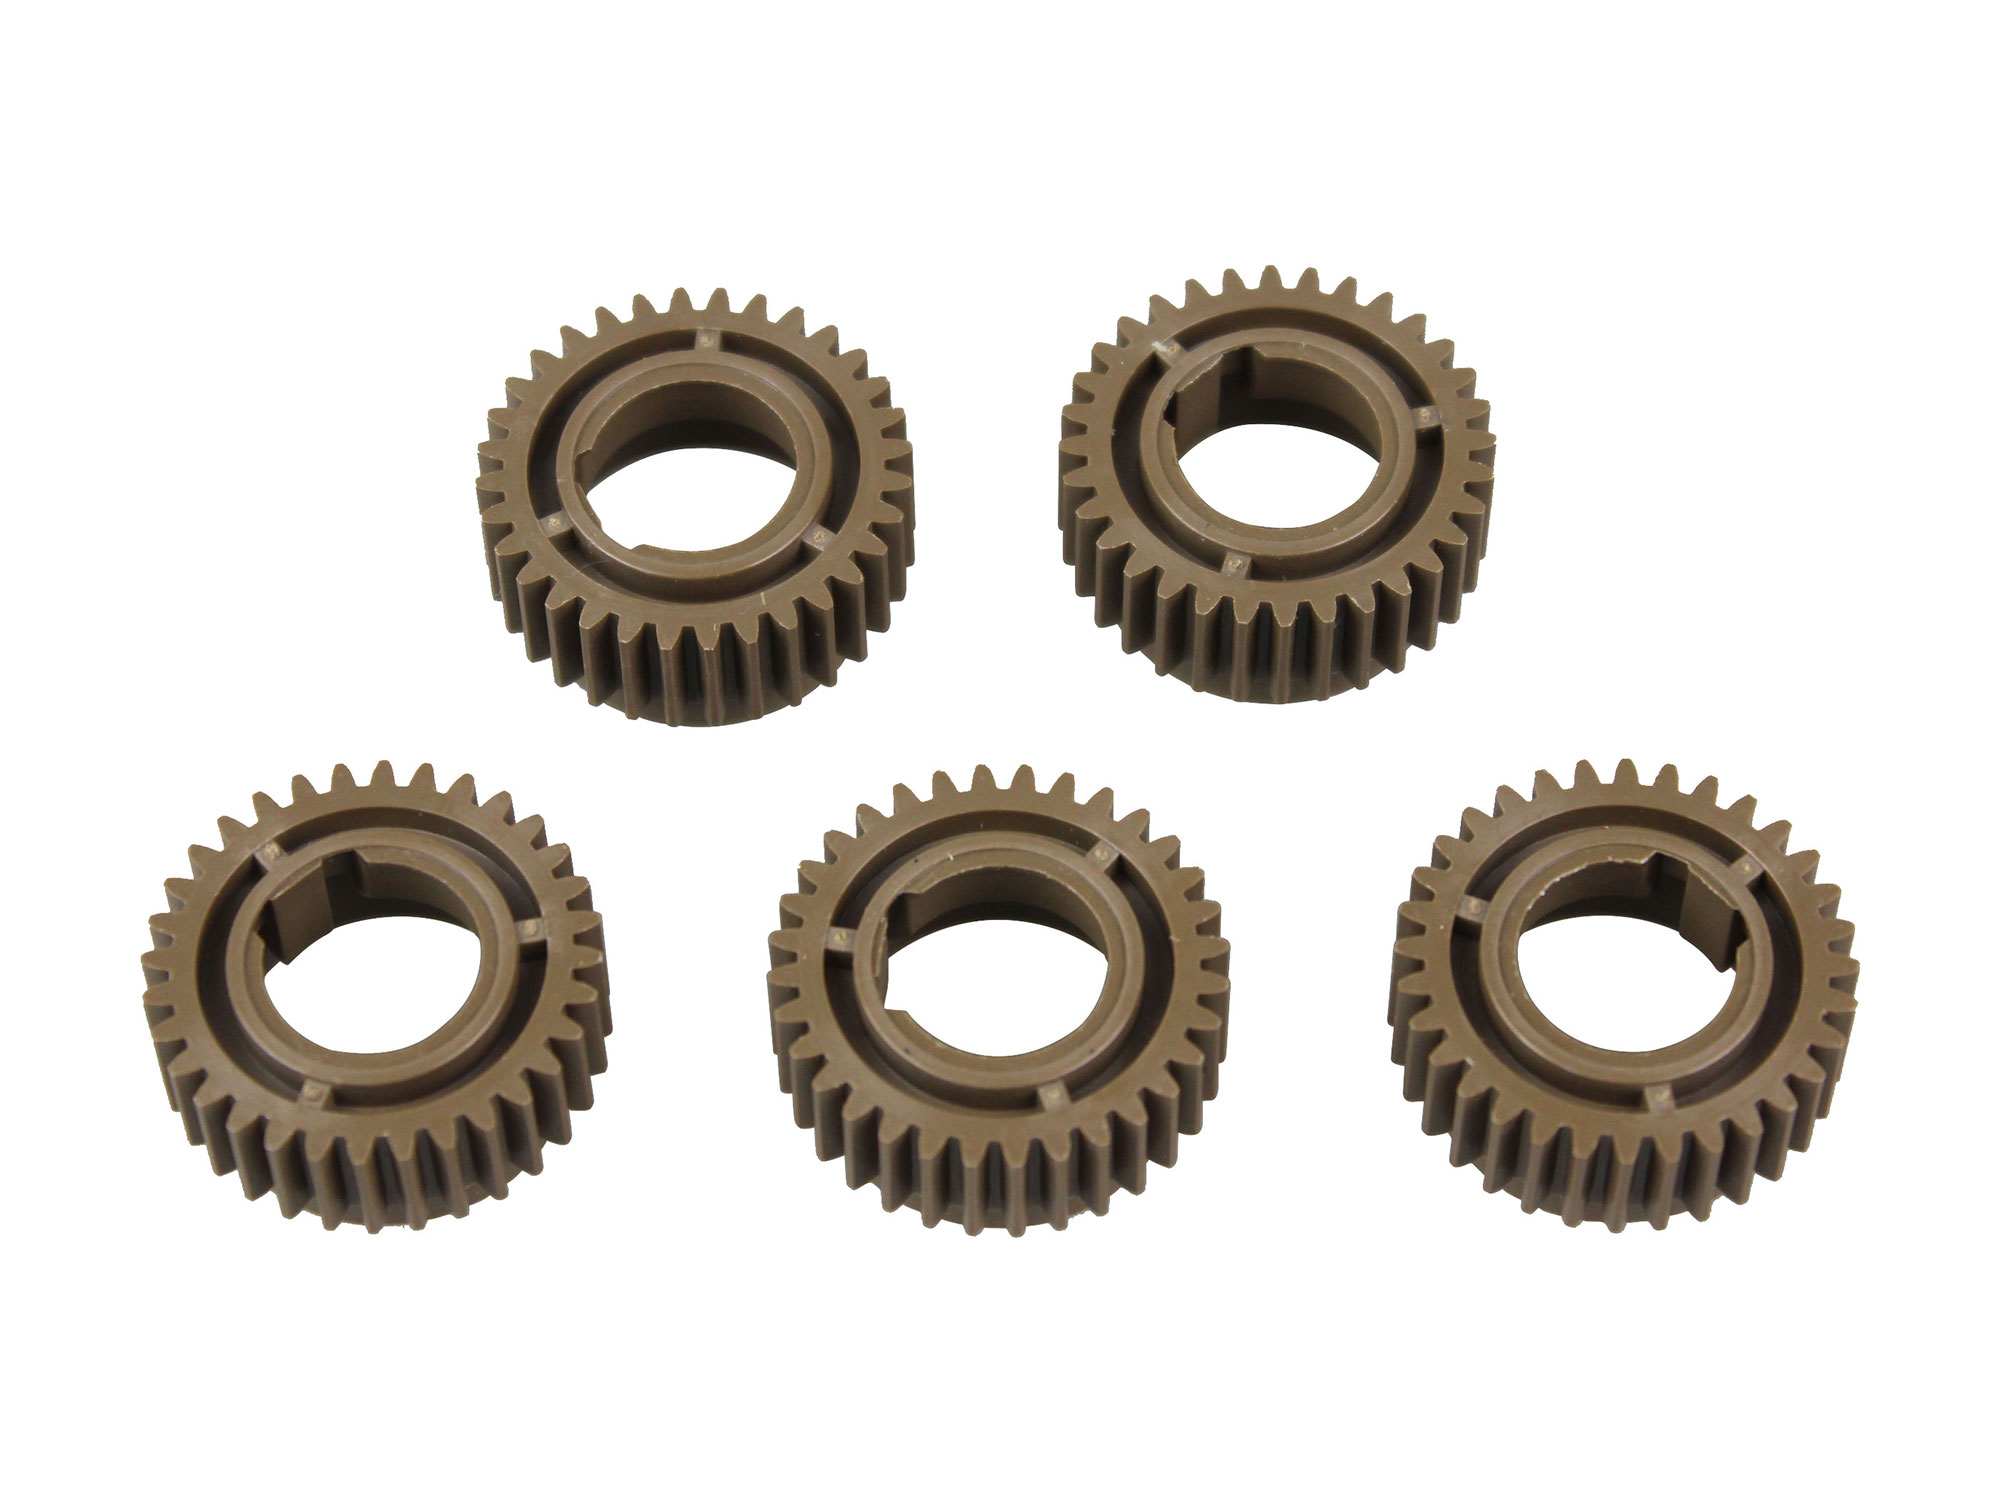 Upper Roller Gear 32T for Kyocera FS-1040/1060DN